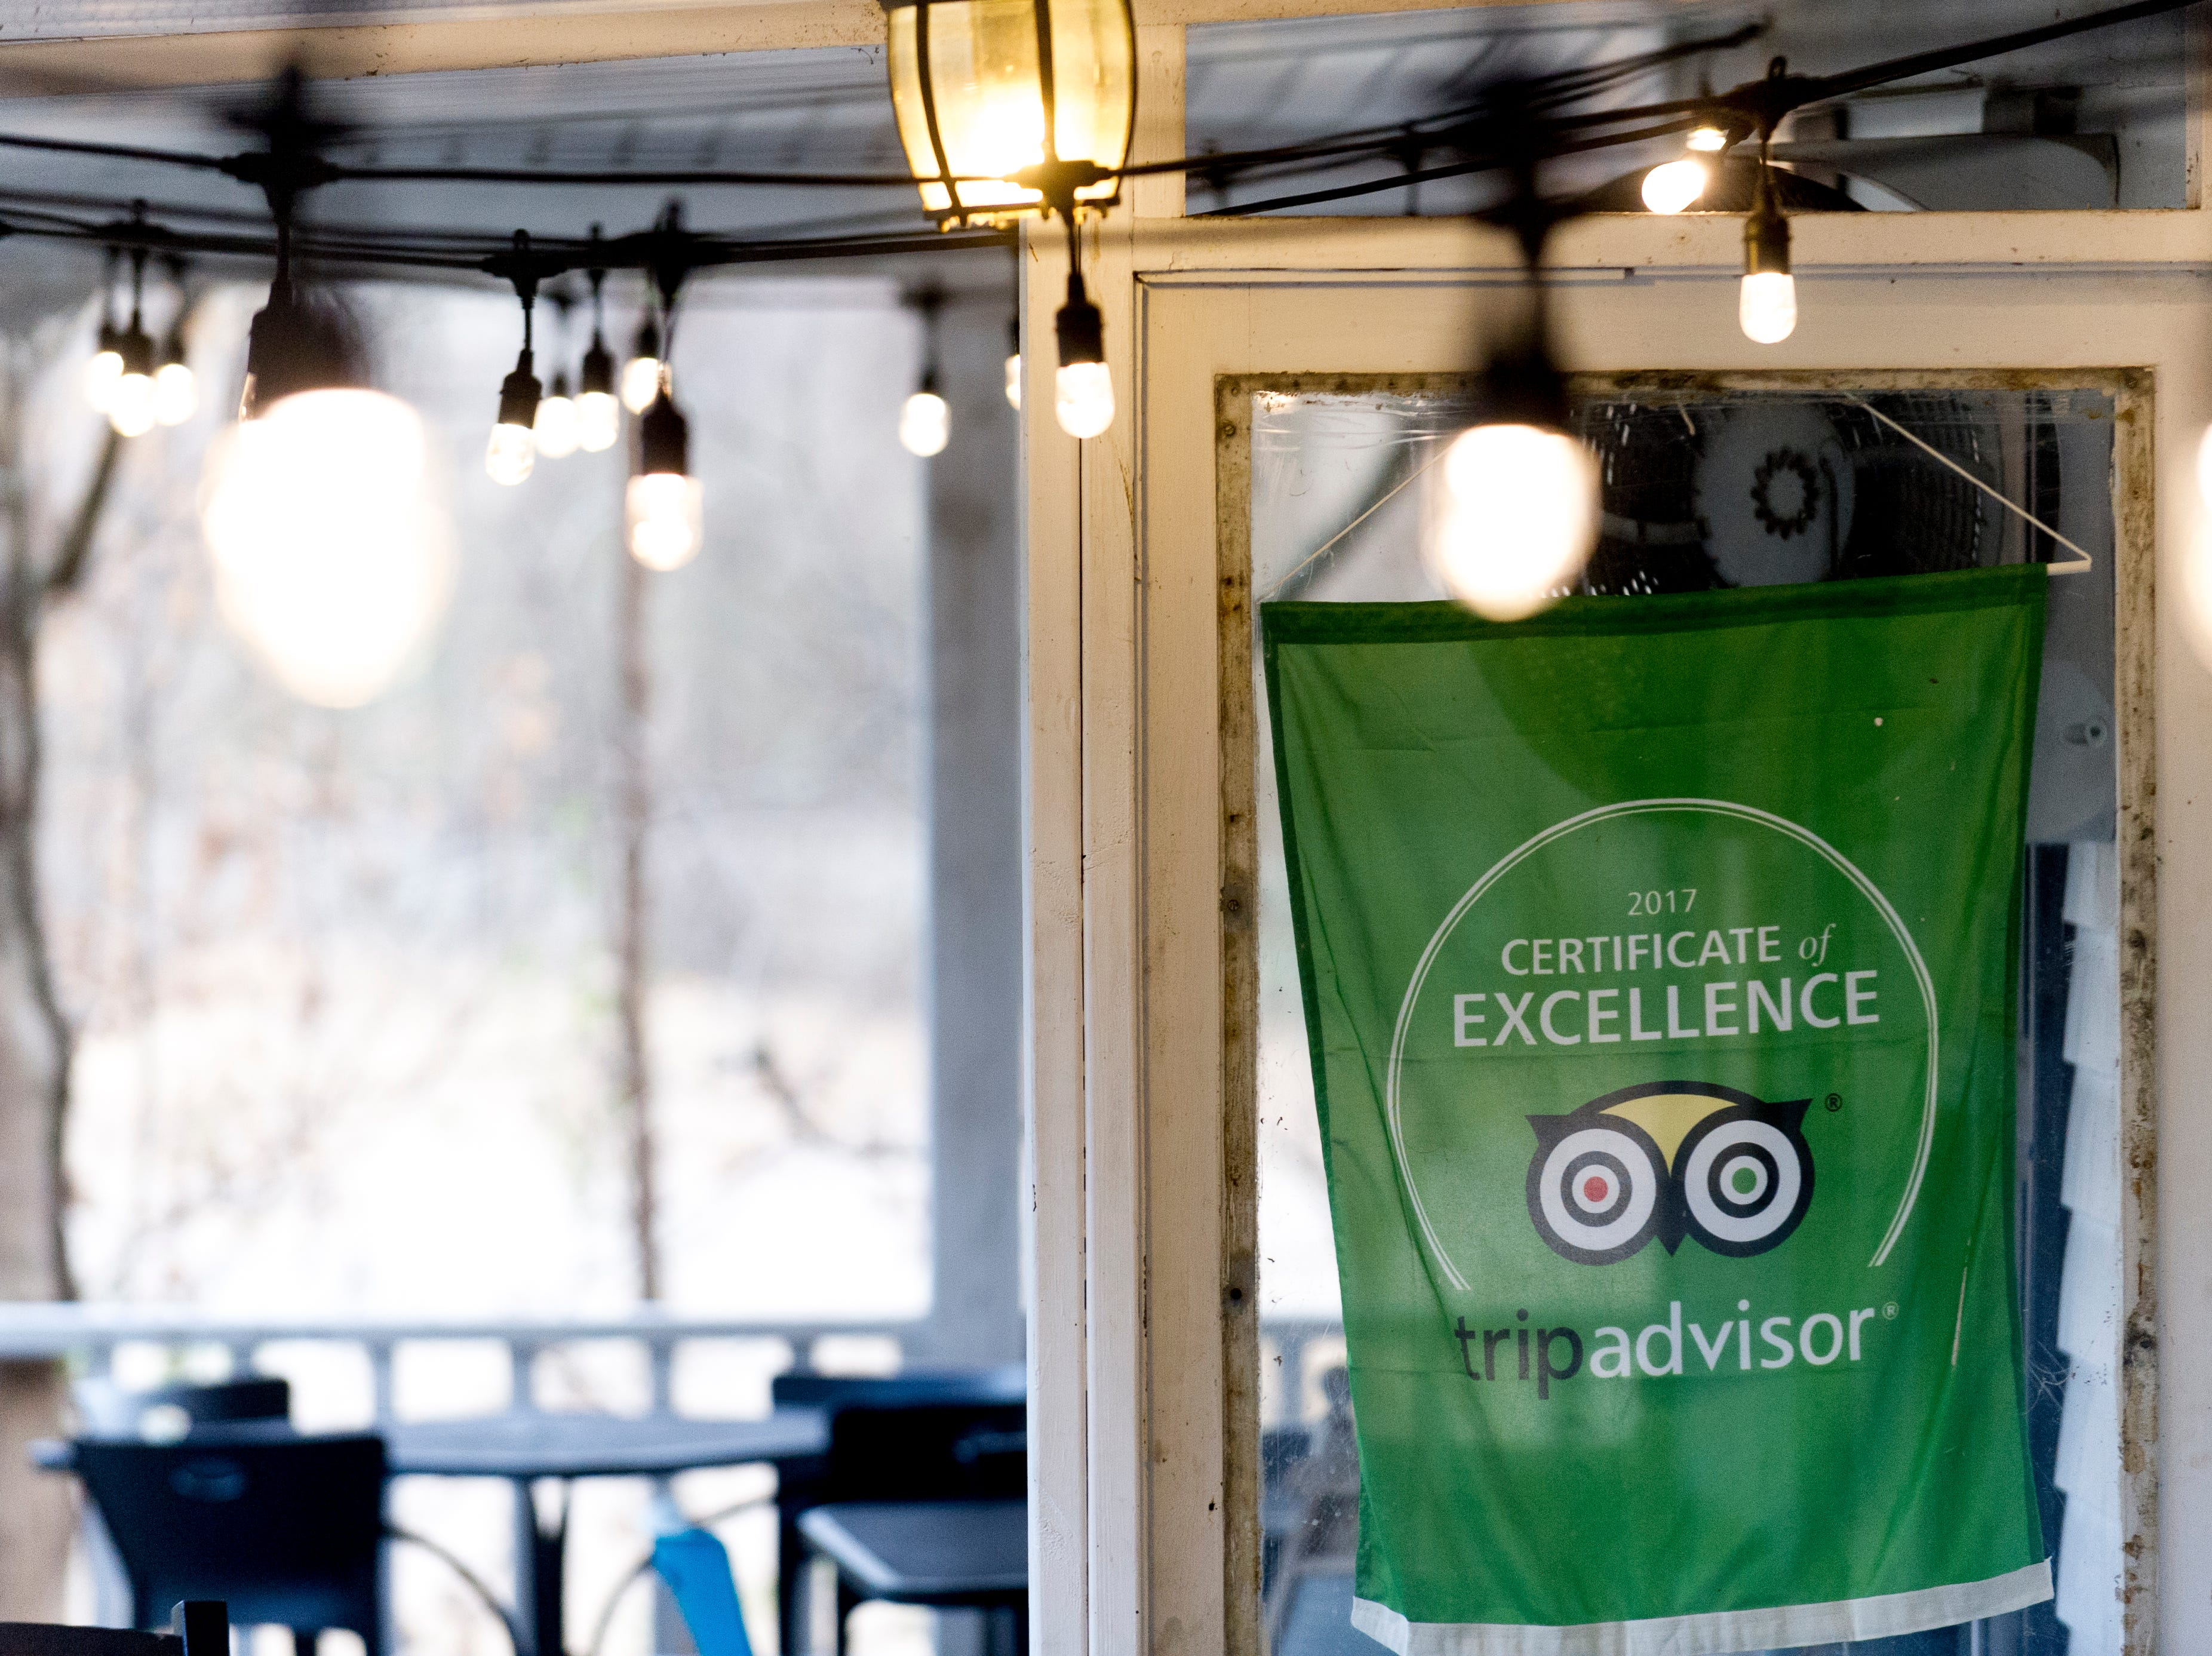 A banner advertising the restaurants' Certificate of Excellence on Trip Advisor hangs on the porch at The Front Porch Restaurant in Powell, Tennessee on Saturday, December 29, 2018. For five years, owner Bart Elkins has worked to revive that experience of the front porch being used as the focus for family and friends.